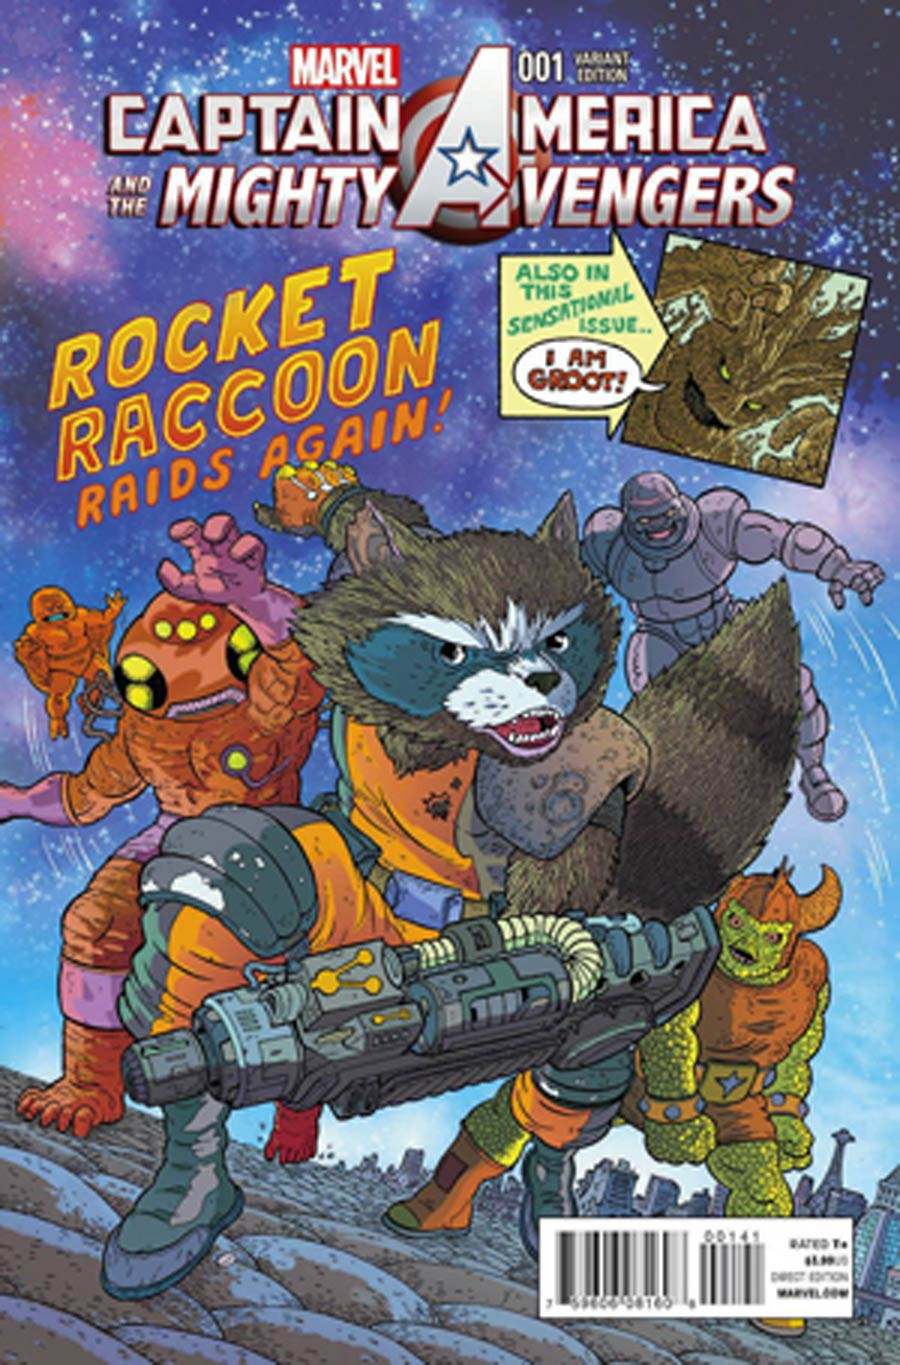 Captain America And The Mighty Avengers #1 Cover C Variant Rocket Raccoon & Groot Cover (AXIS Tie-In)